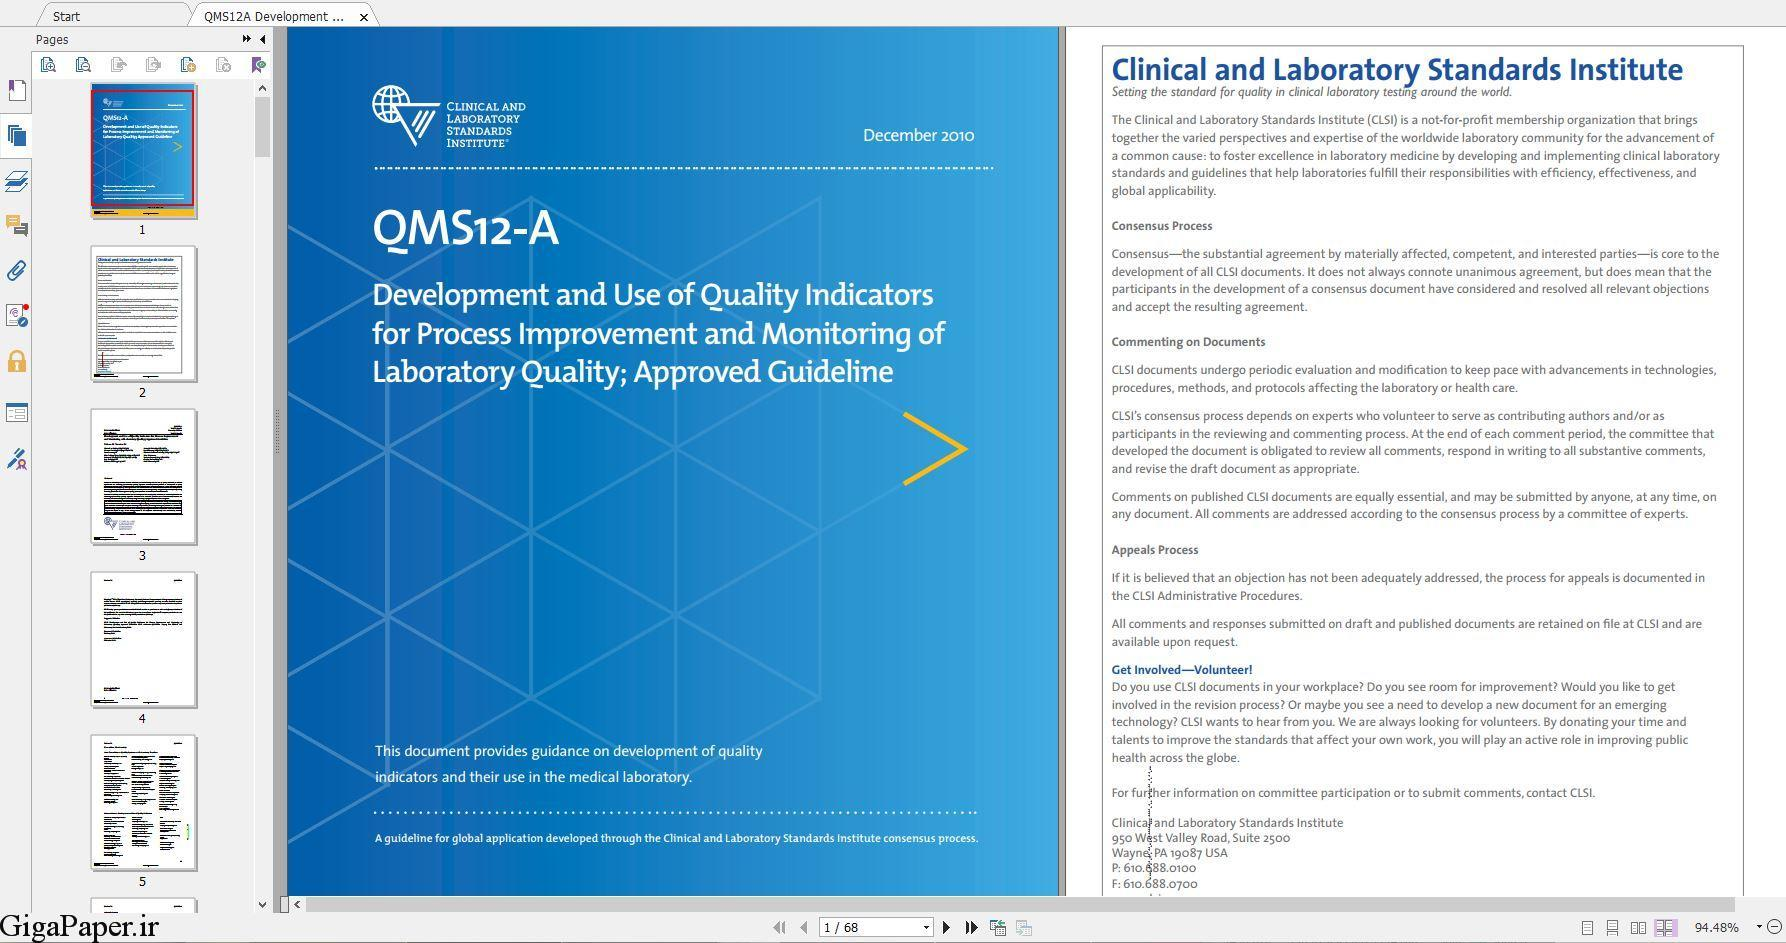 دانلود استاندارد CLSI QMS12 خرید استاندارد QMS12-A Development and Use of Quality Indicators for Process Improvement and Monitoring of Laboratory Quality گیگاپیپر